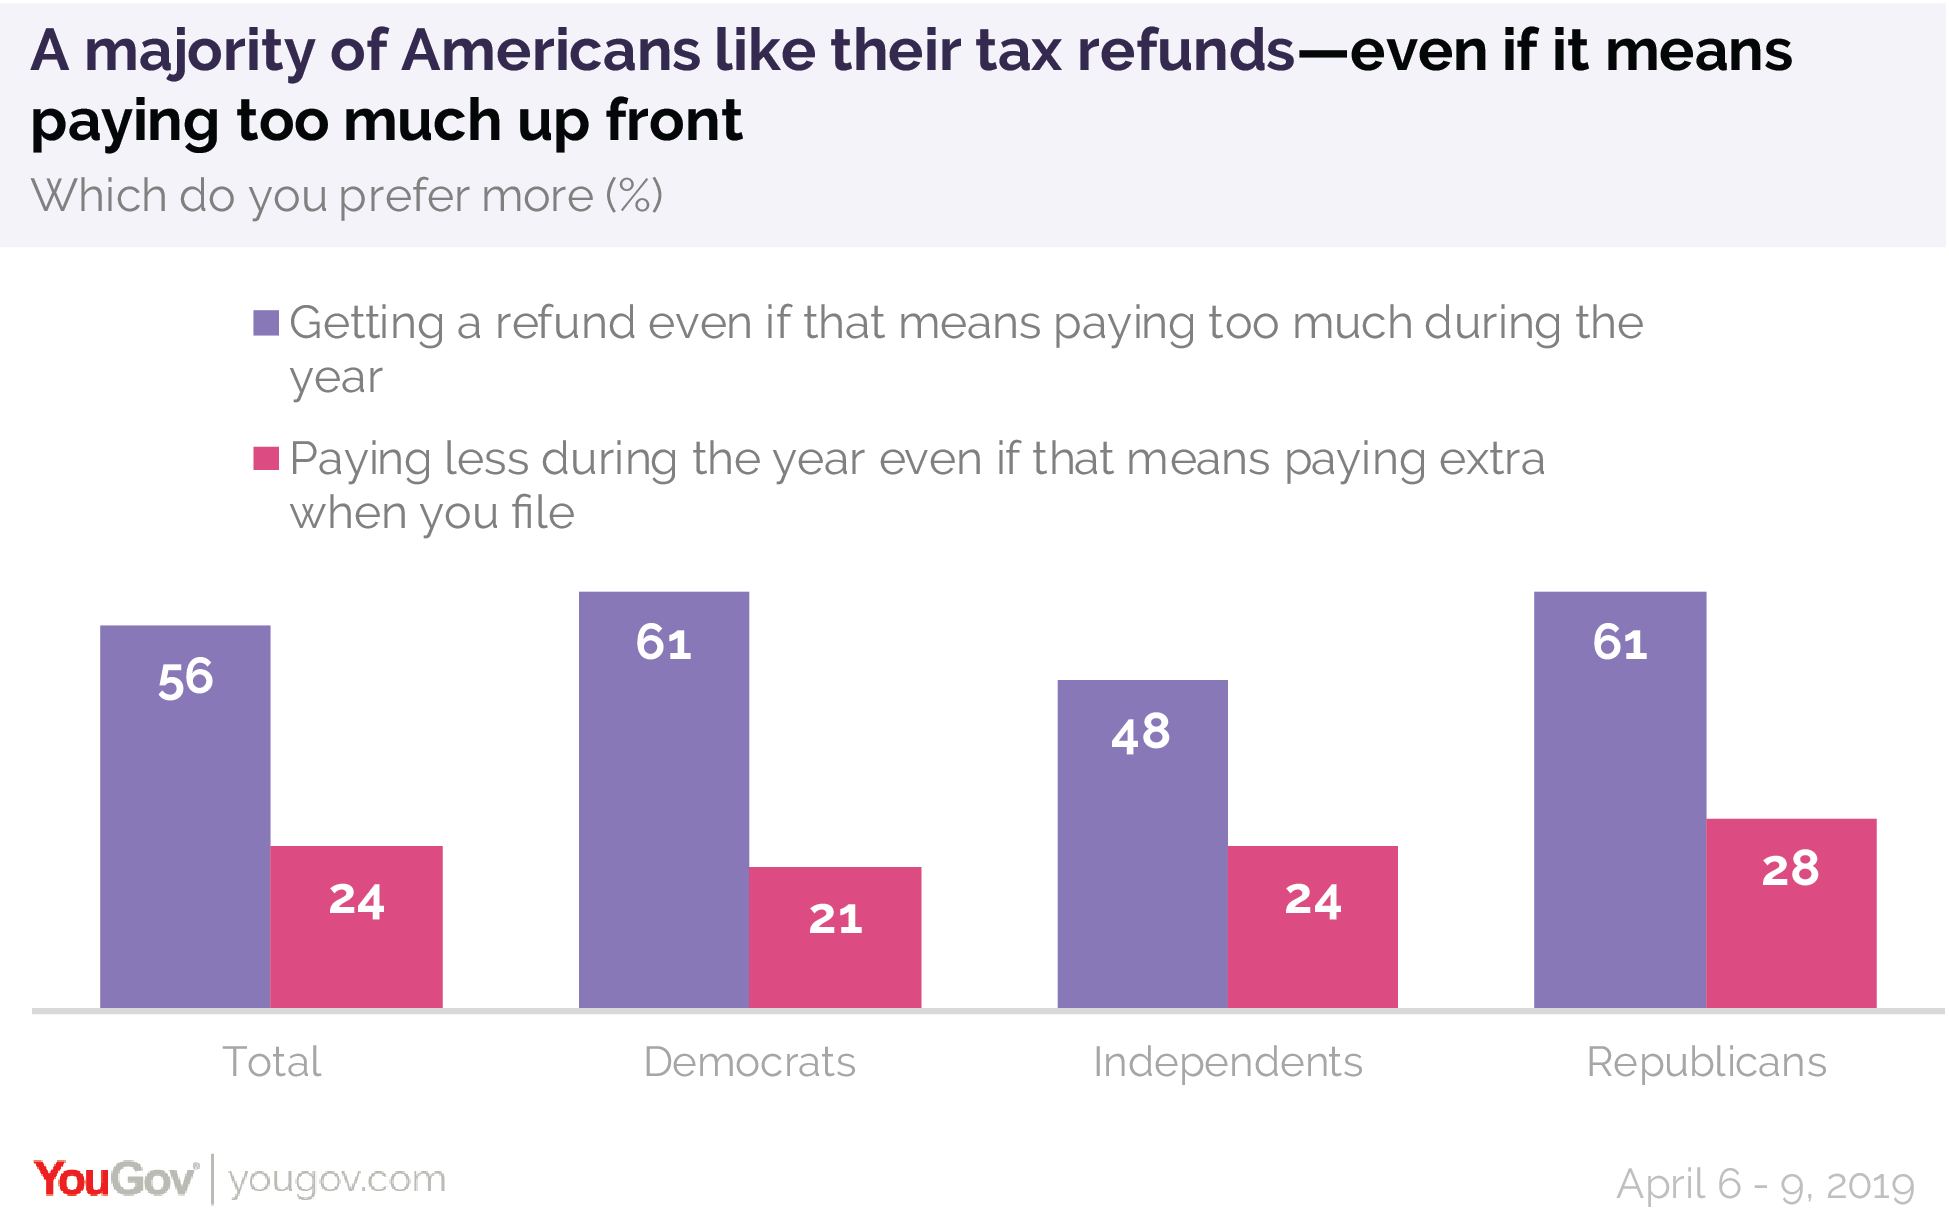 A majority of Americans like their tax returns even if it means paying too much up front